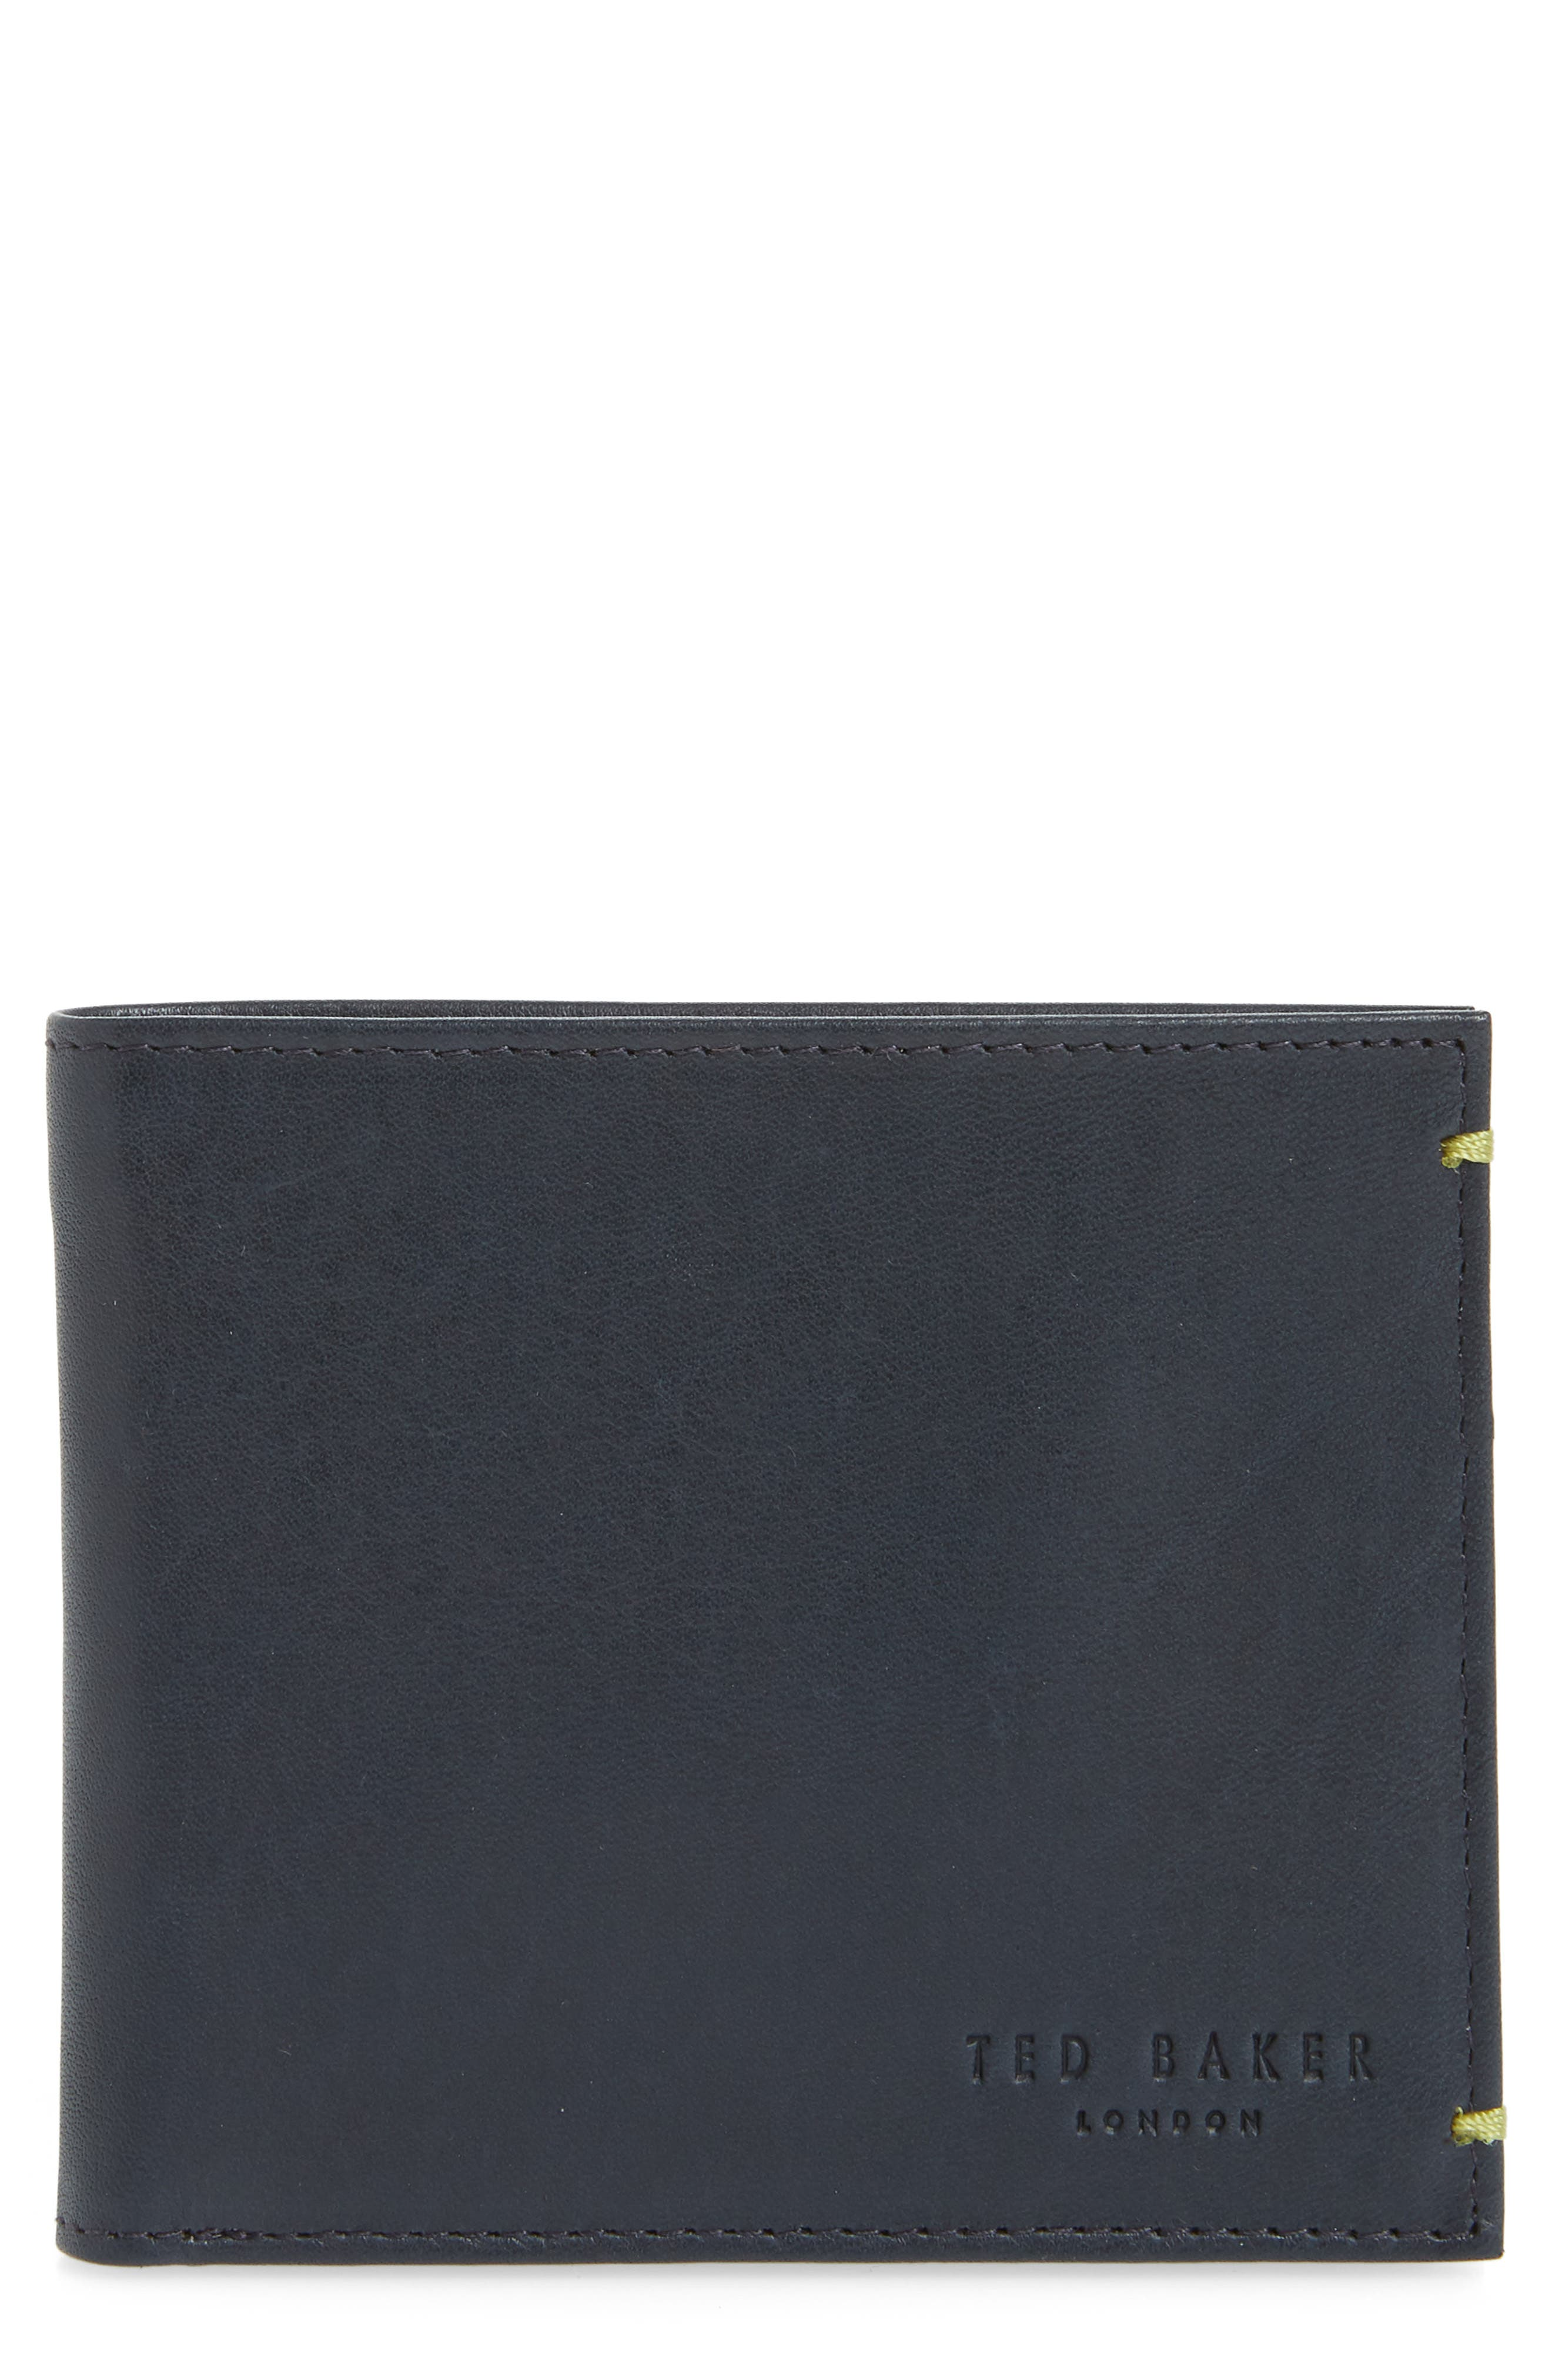 Main Image - Ted Baker London Rester Leather Bifold Wallet